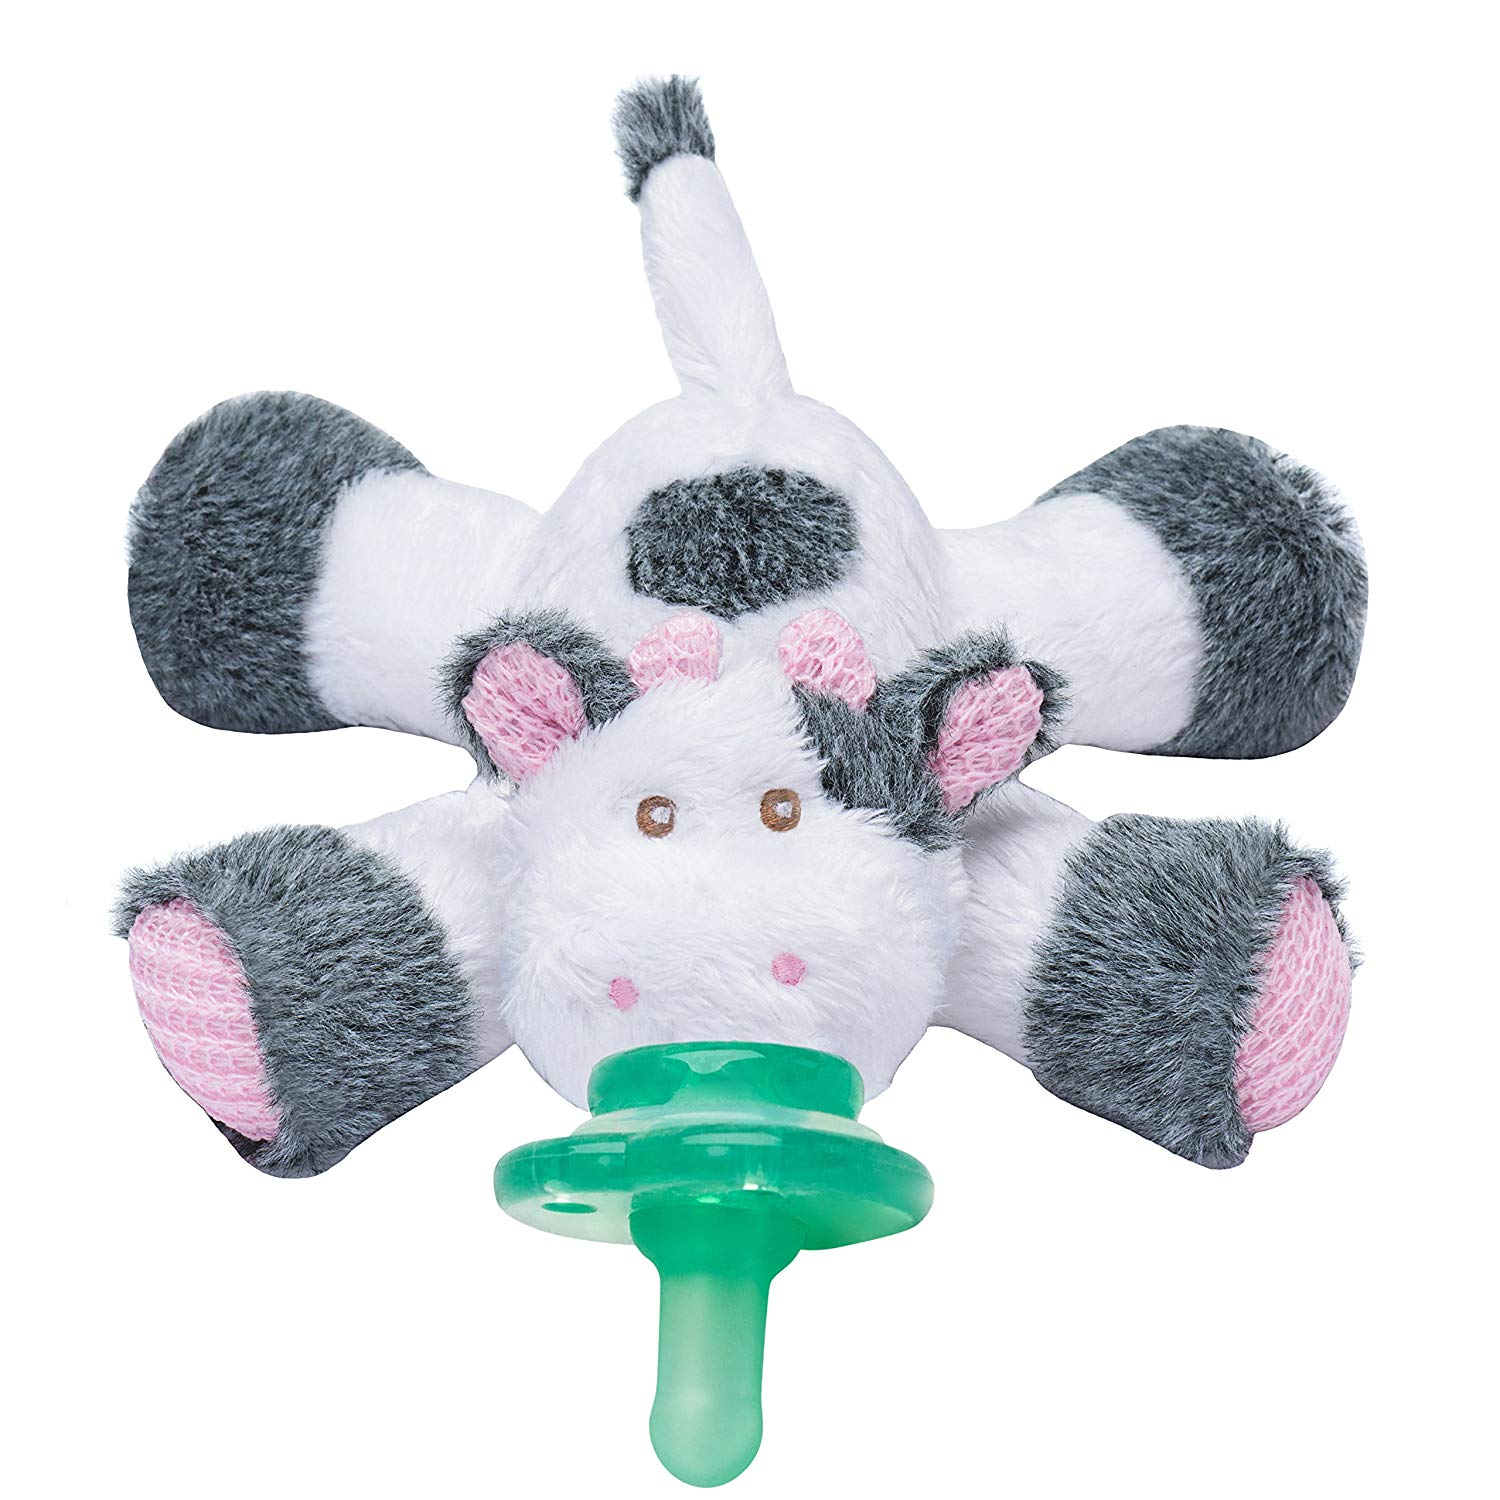 Pacifier Holder Plush Toy Use with Multiple Paci-Plushies Giraffe Buddies